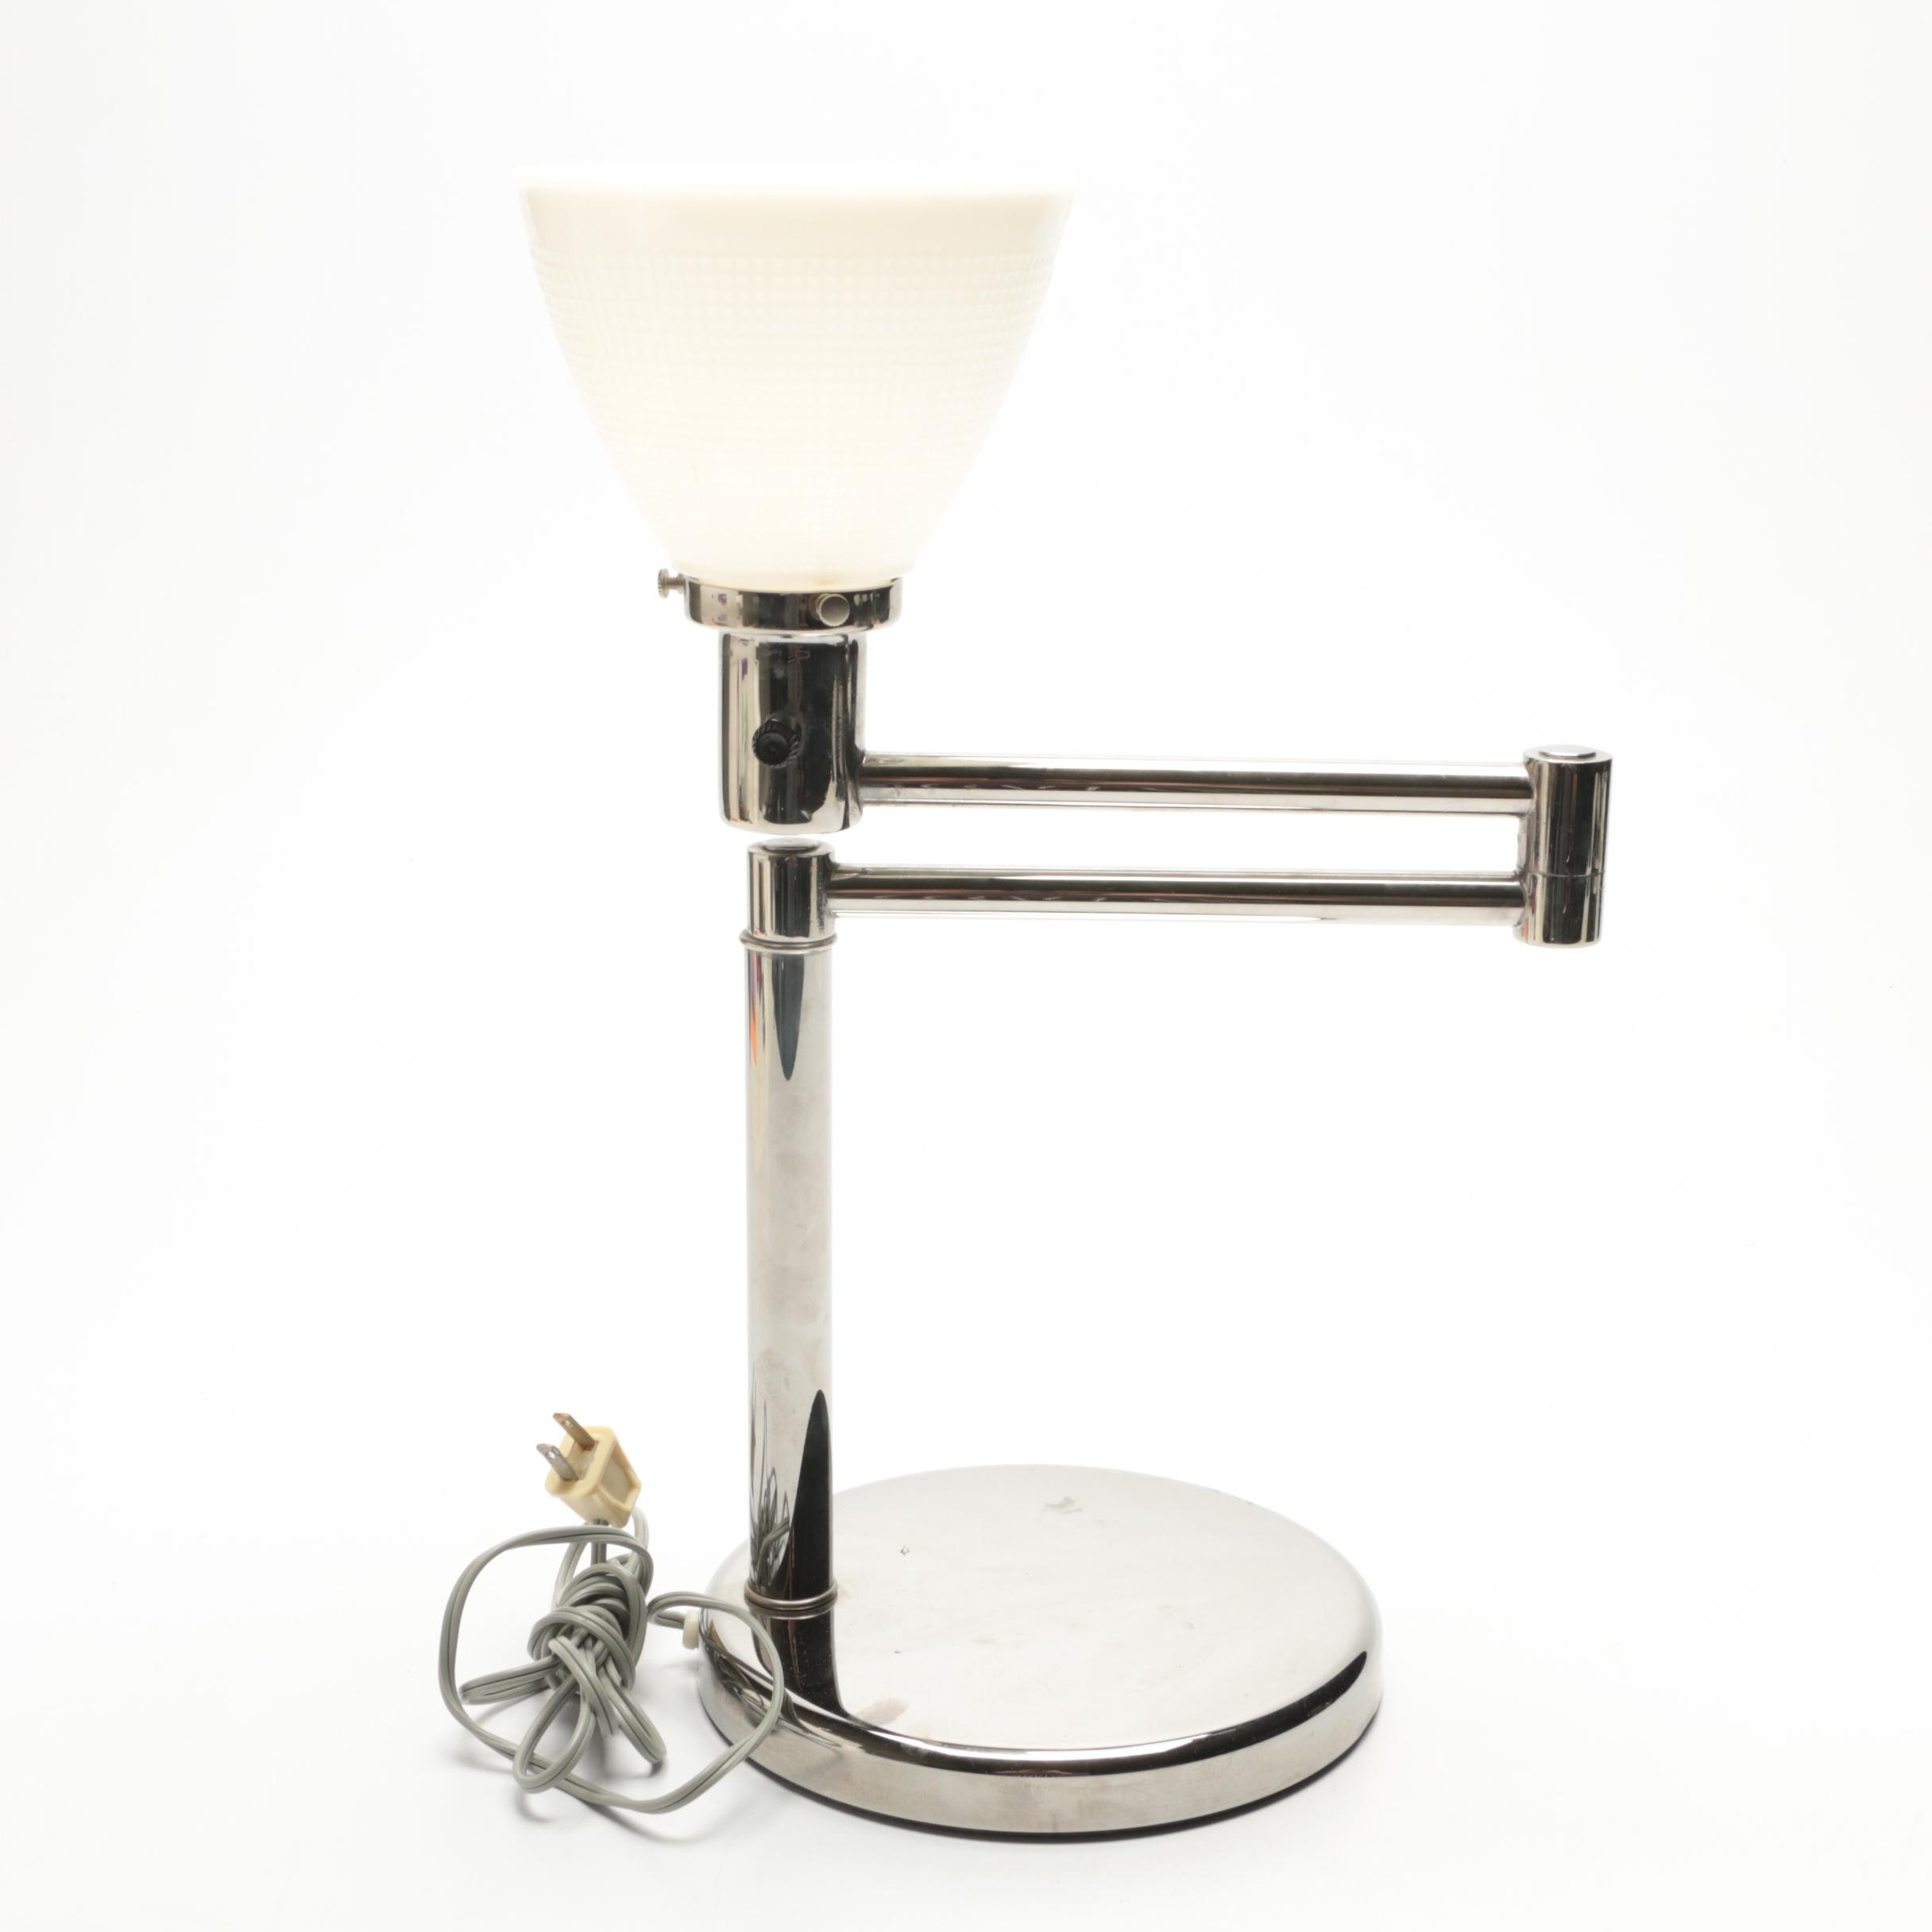 Modernist Swing Arm Desk Lamp In Chrome  Finish With Milk Glass Shade